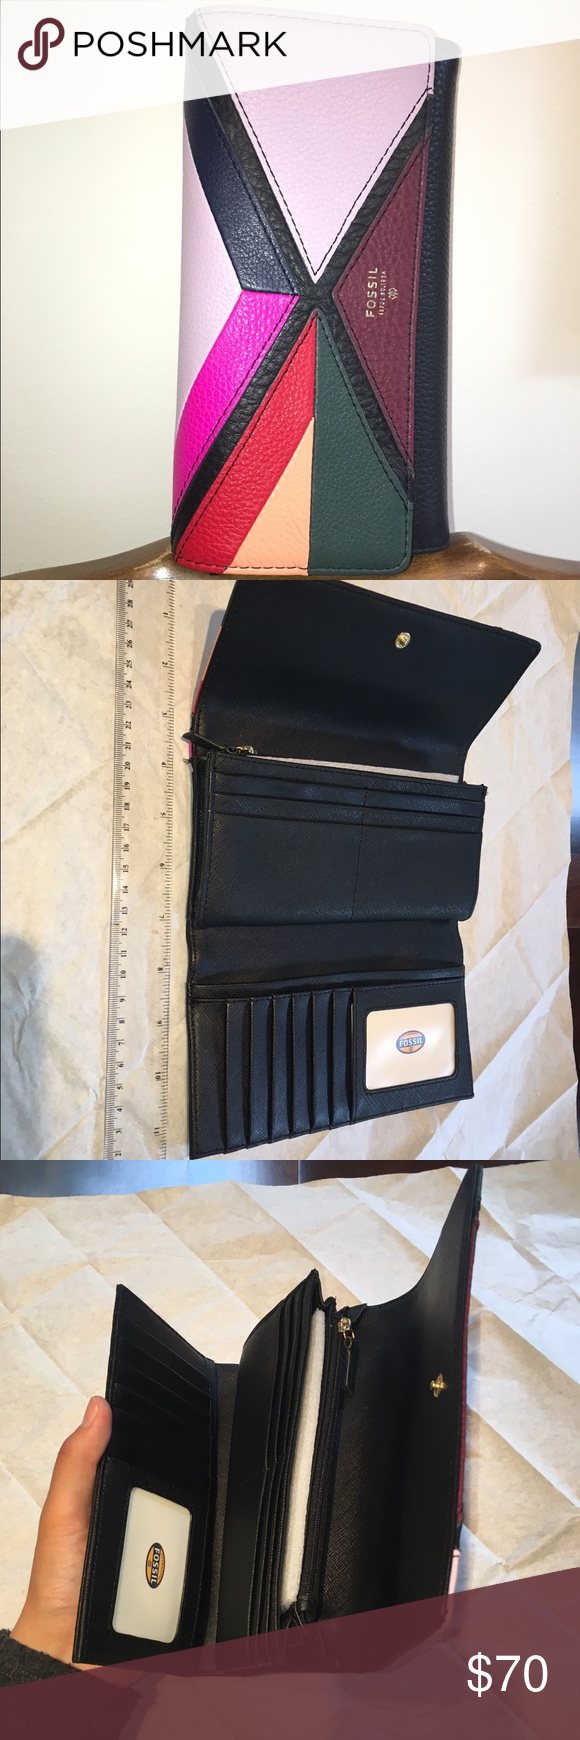 Fossil Long Wallet Fossil. Genuine Leather. Colorful patched design with black based leather, with brass colored hardware. 7.5in x 4in width of 1.5in. 19cm x 10.4cm width of 3.8cm. There is a zipper closure inside and outside. Very spacious amazing wallet, many pockets to fit things in. it's very unique design. NOT USED. I'm willing to meet at a medium, so please make offers. Fossil Bags Wallets